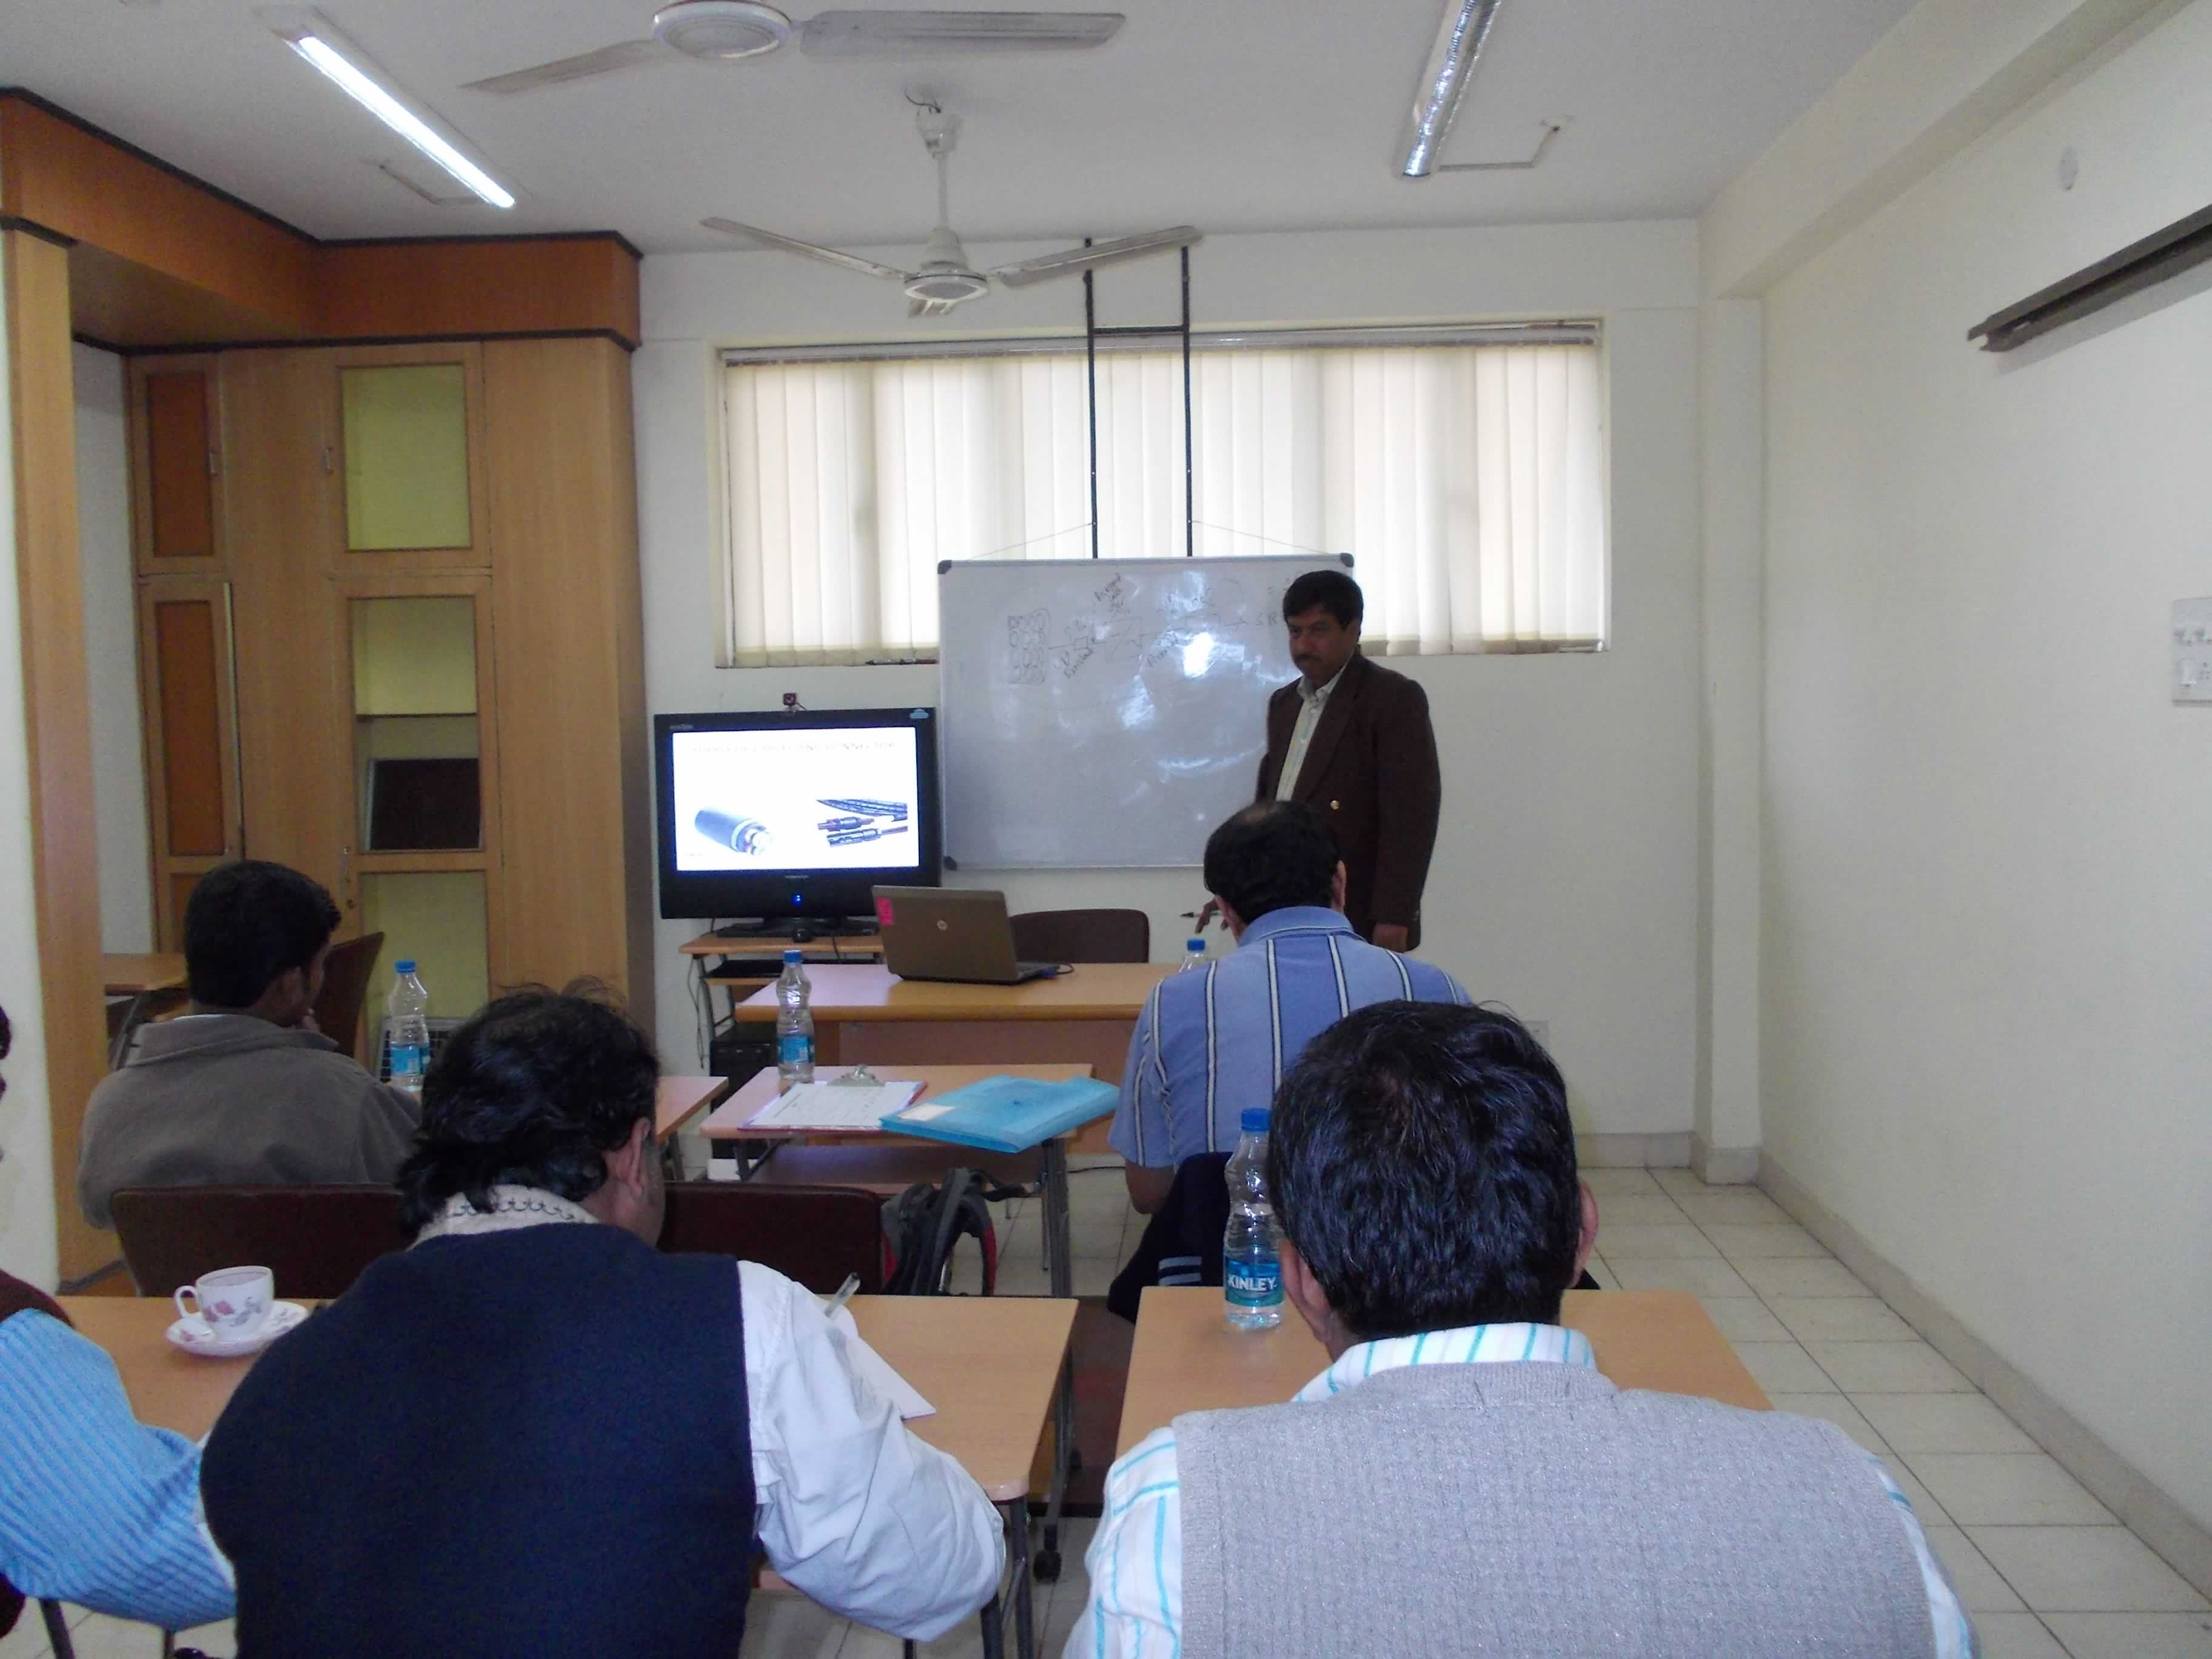 Theory Class going on for 6 days Short Training Program on Solar PV for Energy Managers